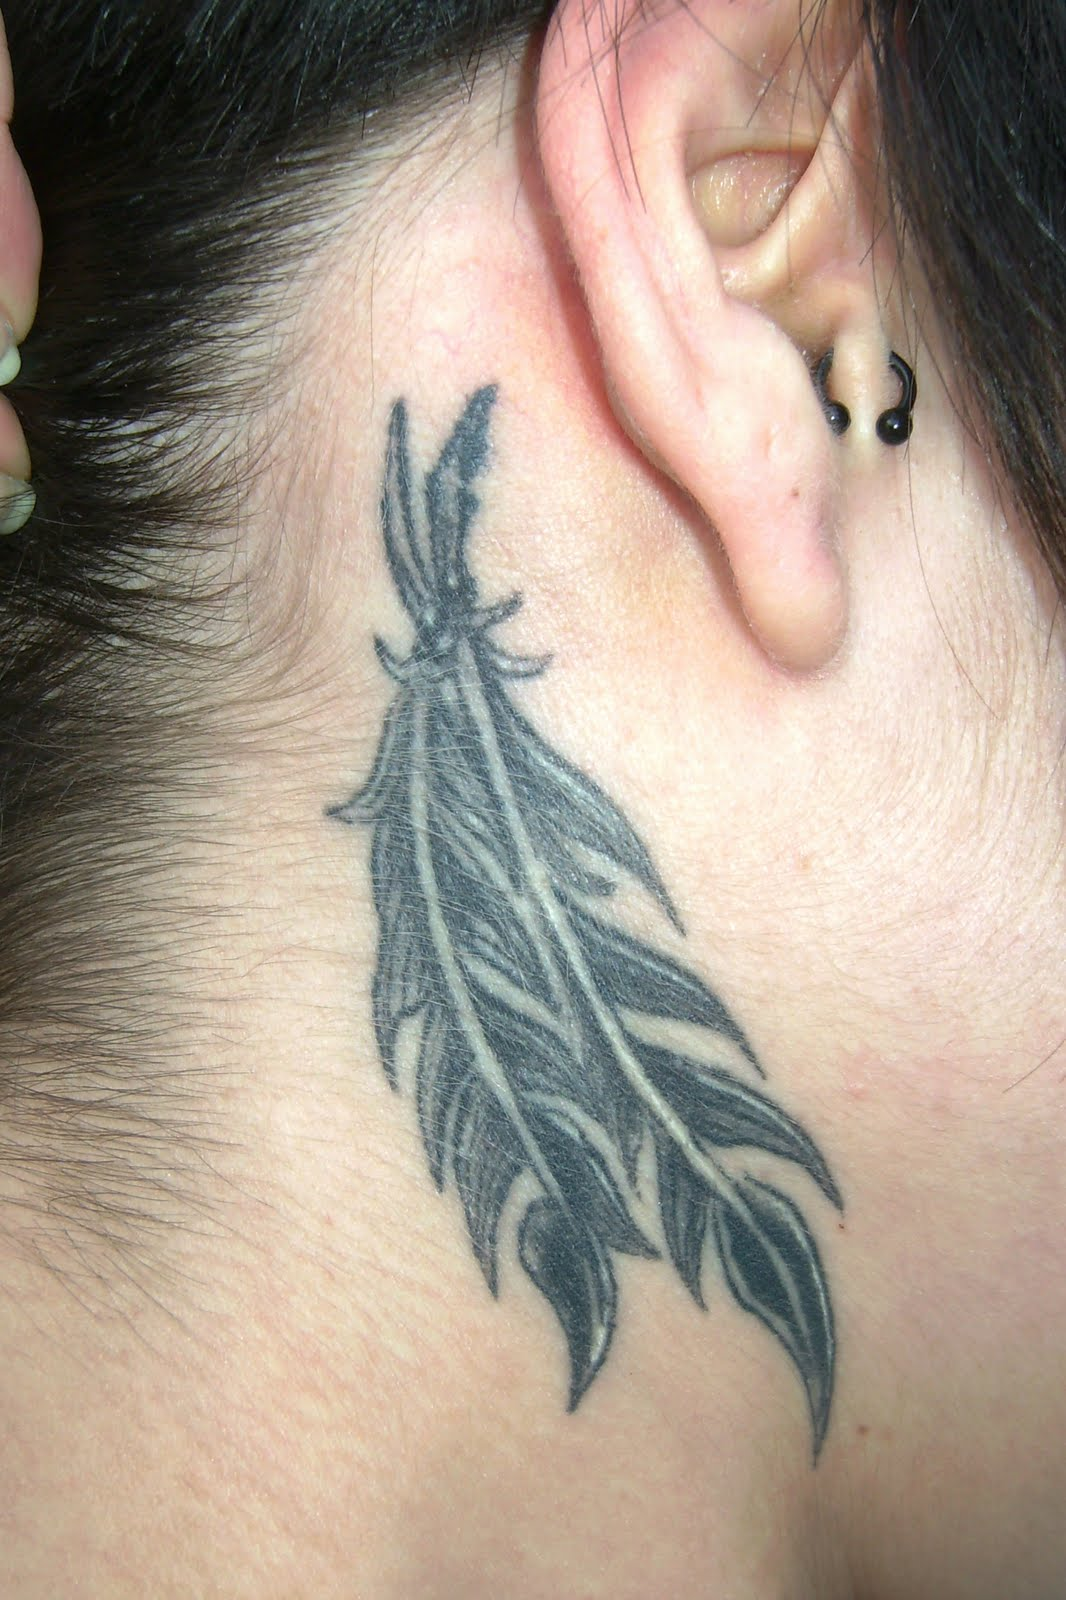 Tattoo design behind ear - All Images To Native Feather Tattoo Designs For Men On Behind Ear